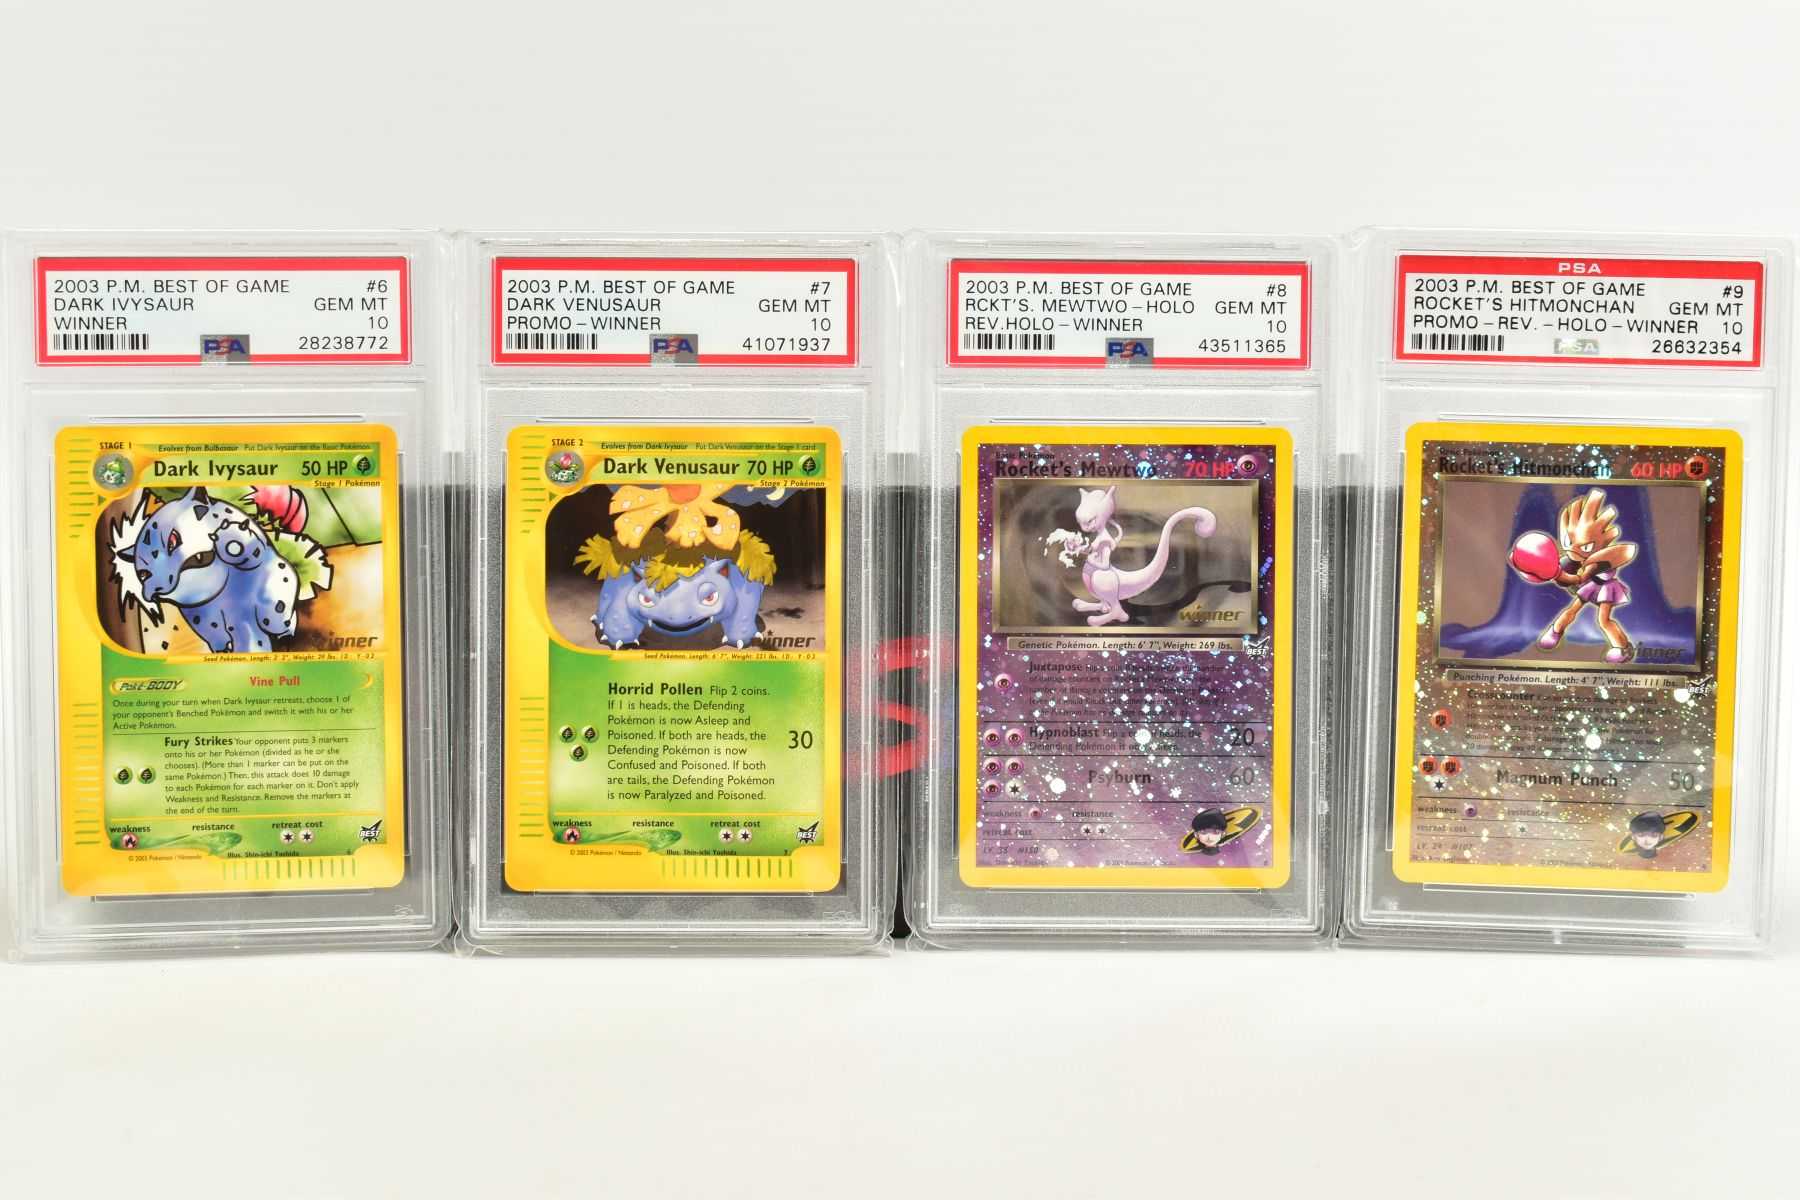 A QUANTITY OF PSA GRADED POKEMON BEST OF GAME CARDS, all are graded GEM MINT 10 and are sealed in - Image 4 of 4